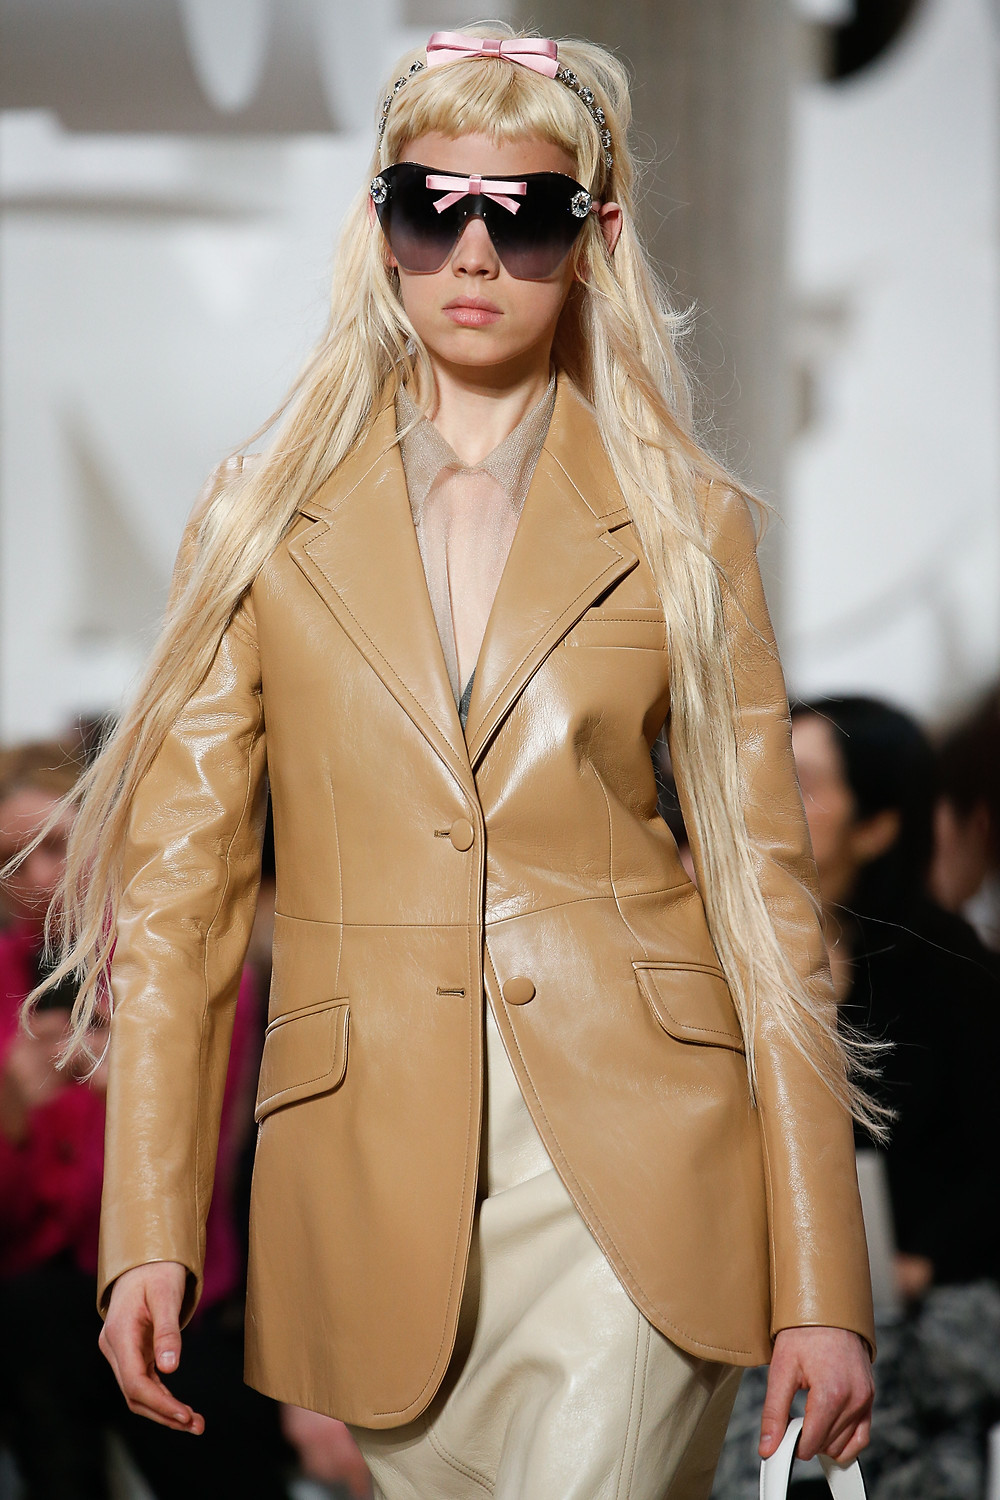 Miu Miu Spring 2019 Ready To Wear Extreme Long Hair - Hair Blog Australia